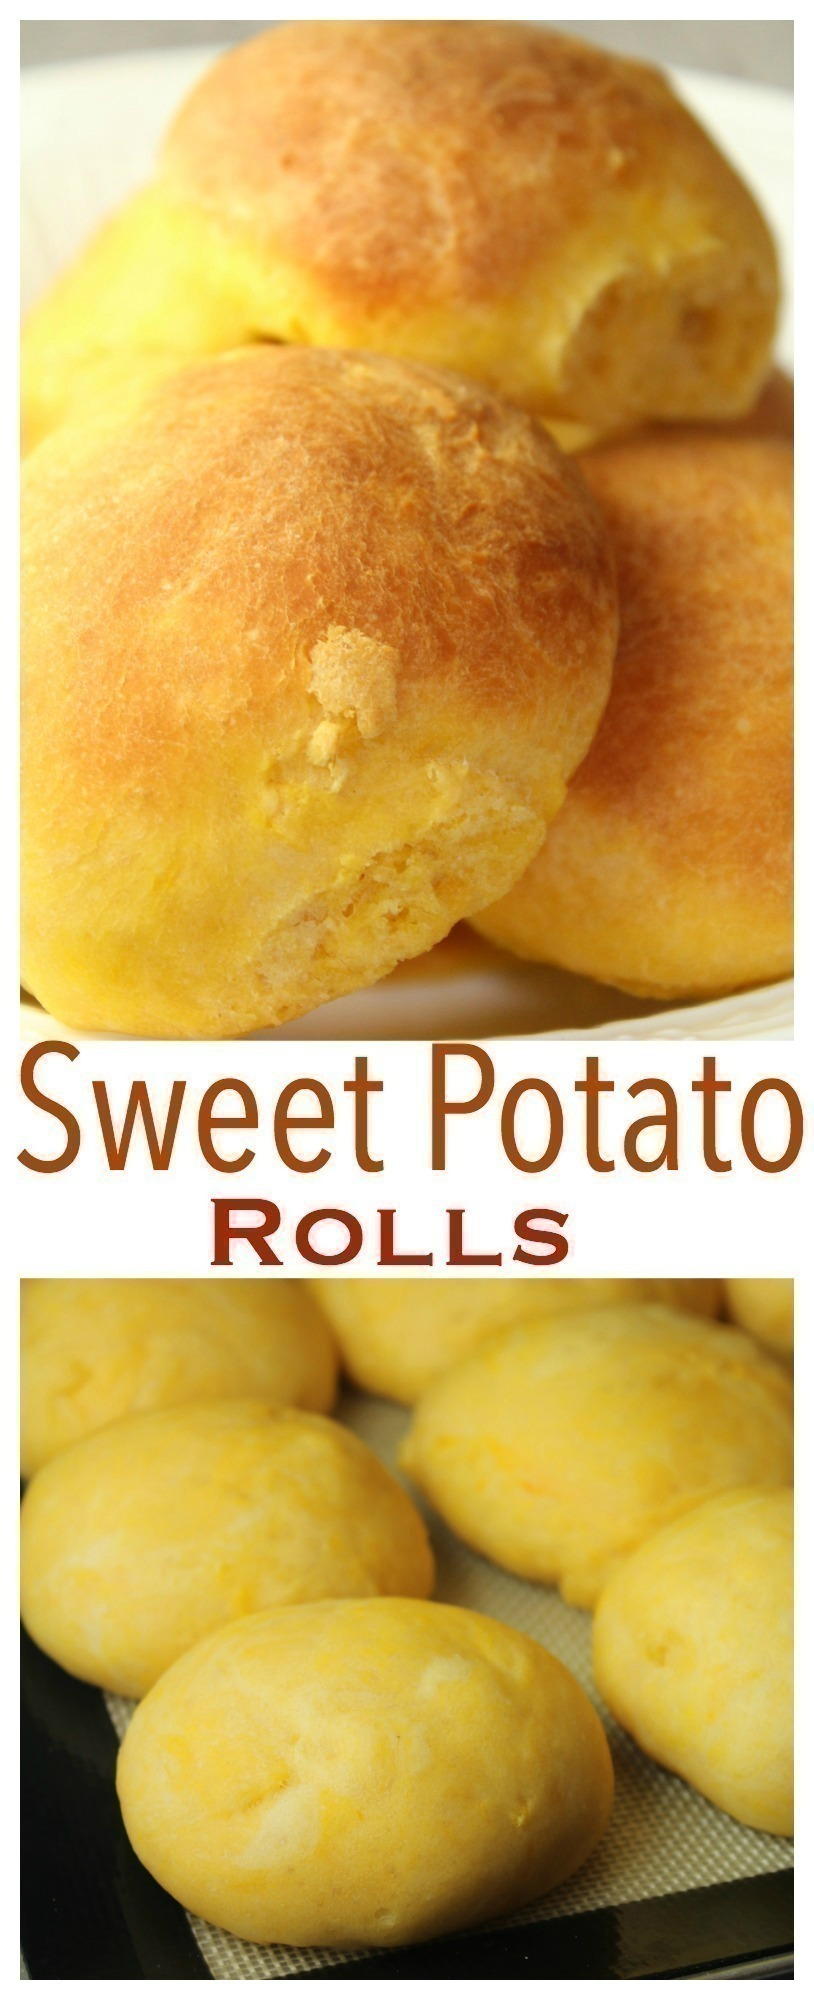 These sweet potato rolls are light & fluffy - and will be a staple at your next holiday dinner!